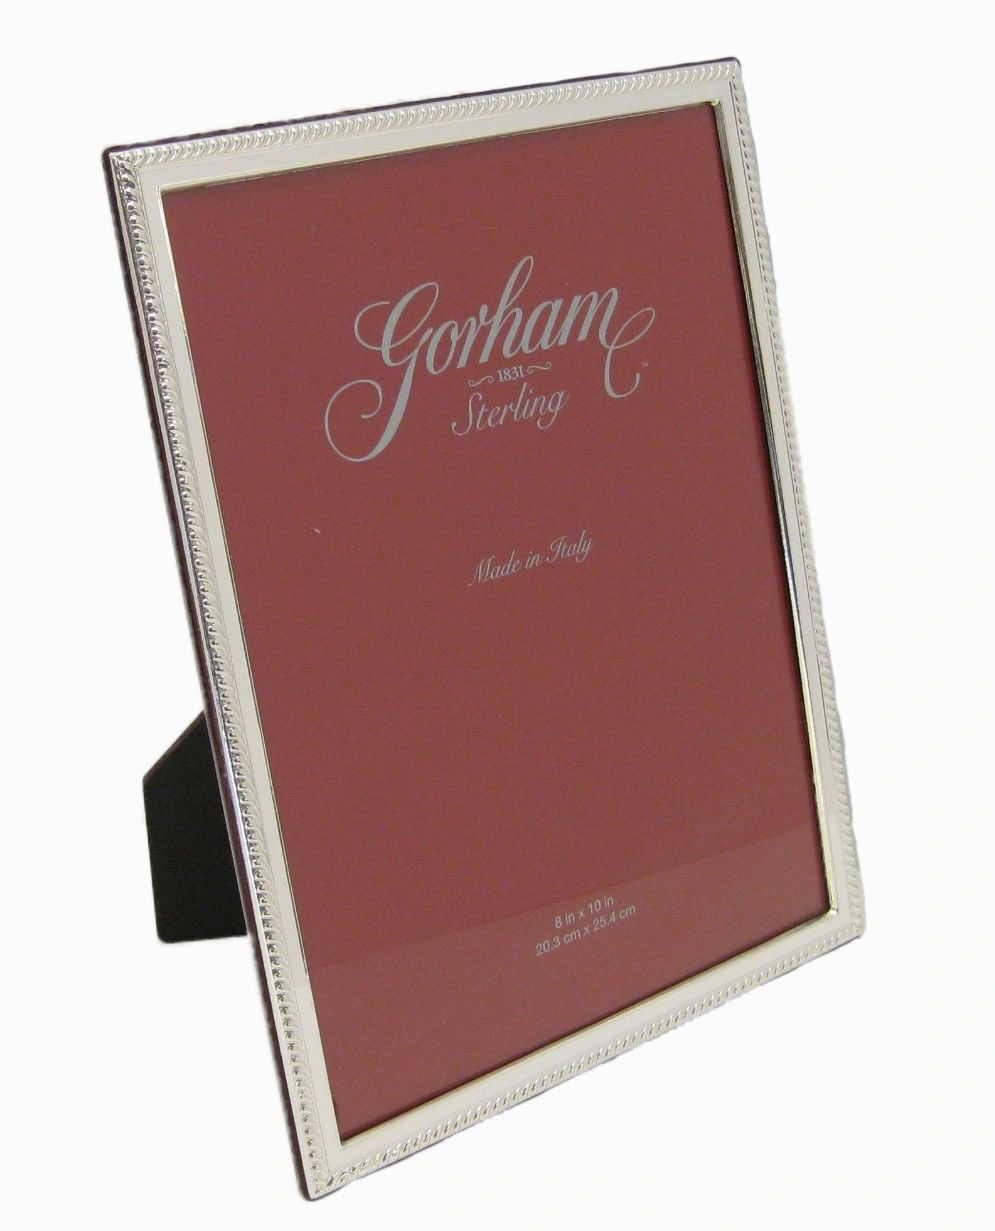 ITALIAN SILVER LAMINATE GLOSSY ELEGANT ROPE BORDER 8 X 10 PICTURE PHOTO FRAME